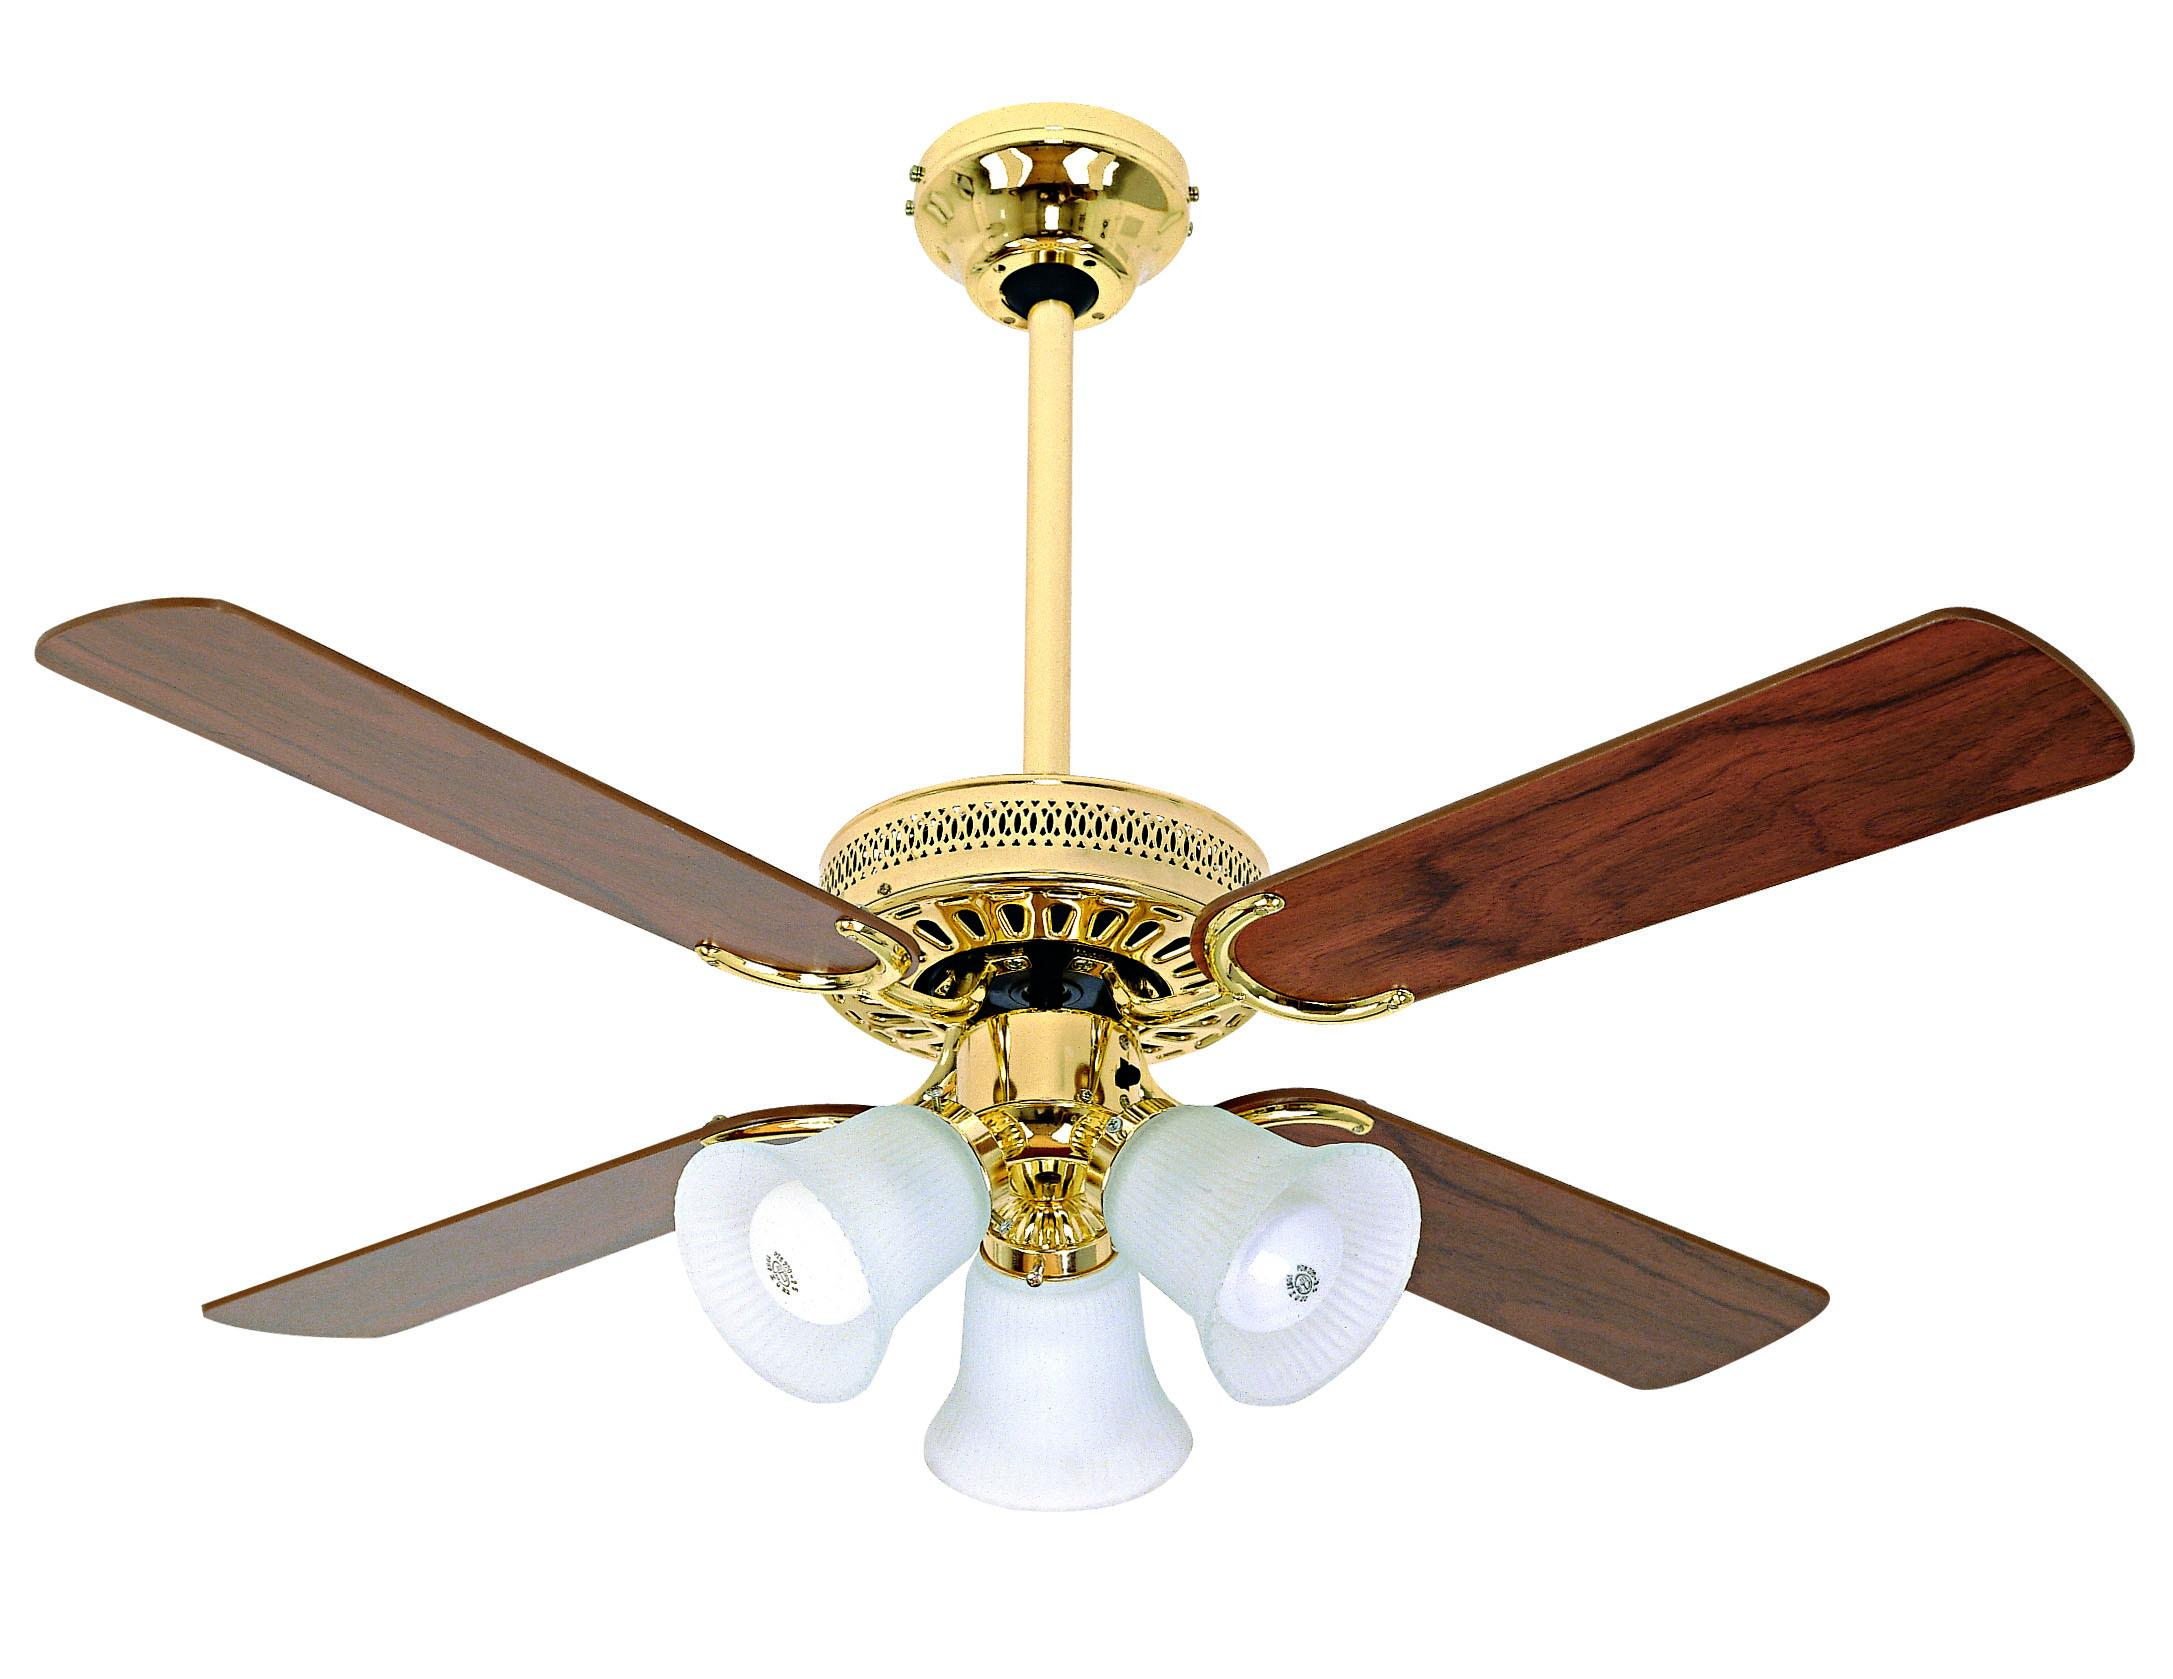 v-guard ceiling fans, reviews, price, rating, tv, mp3 player, mp4